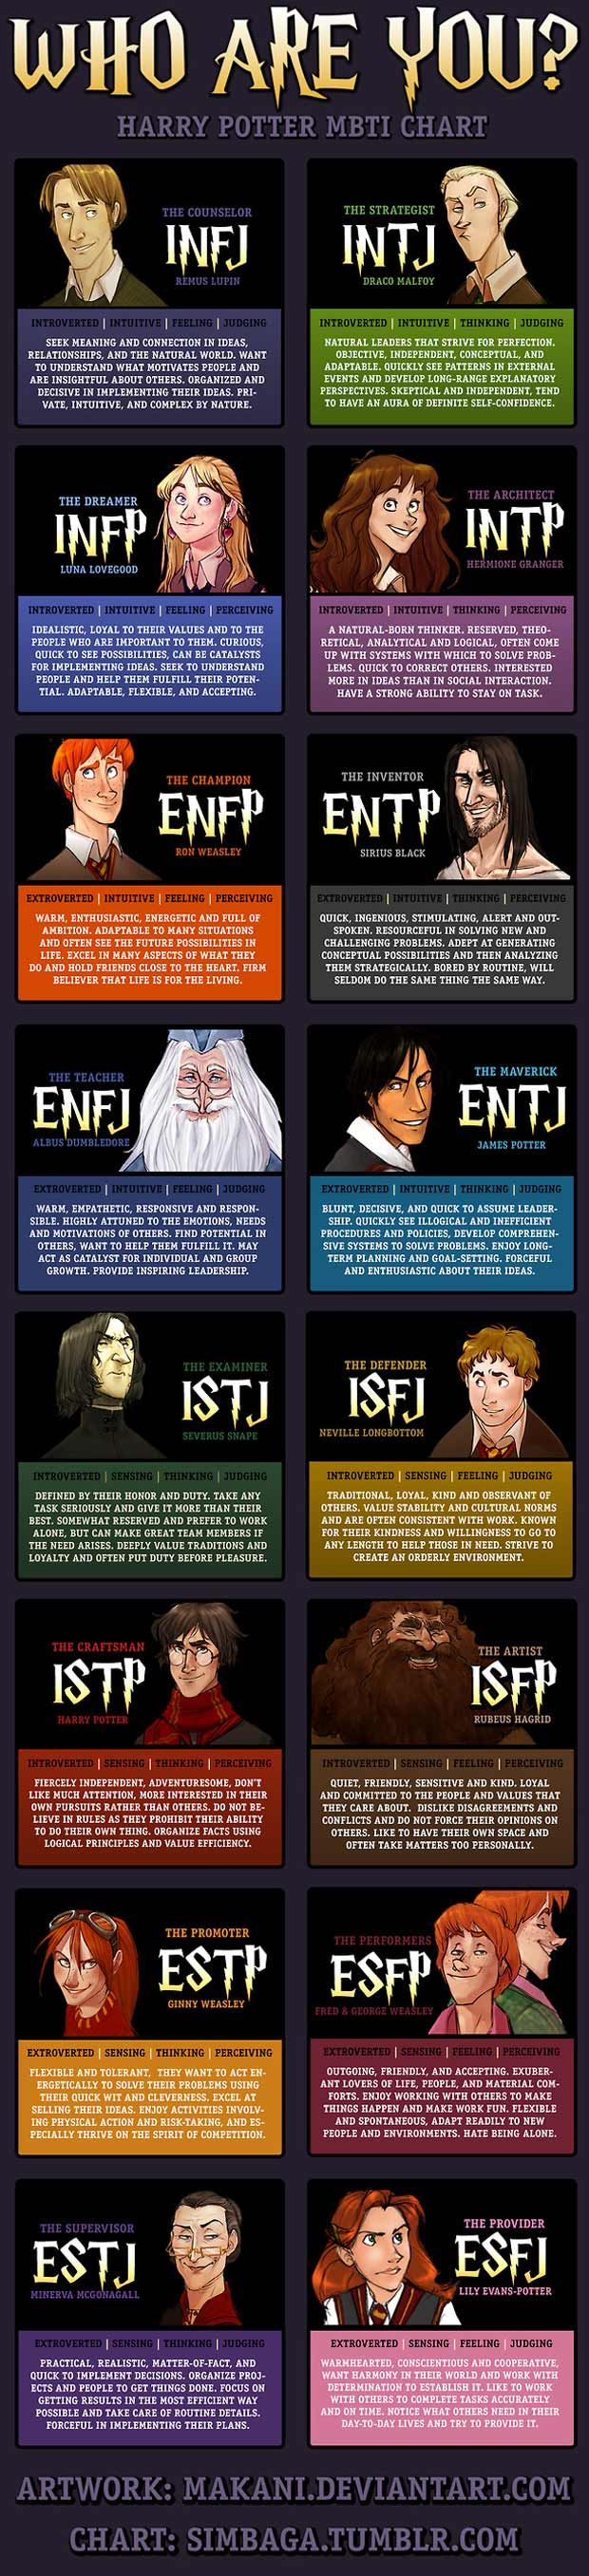 The Harry Potter Personality Test. I'm Remus Lupin. I like that. Who're you? #HarryPotter